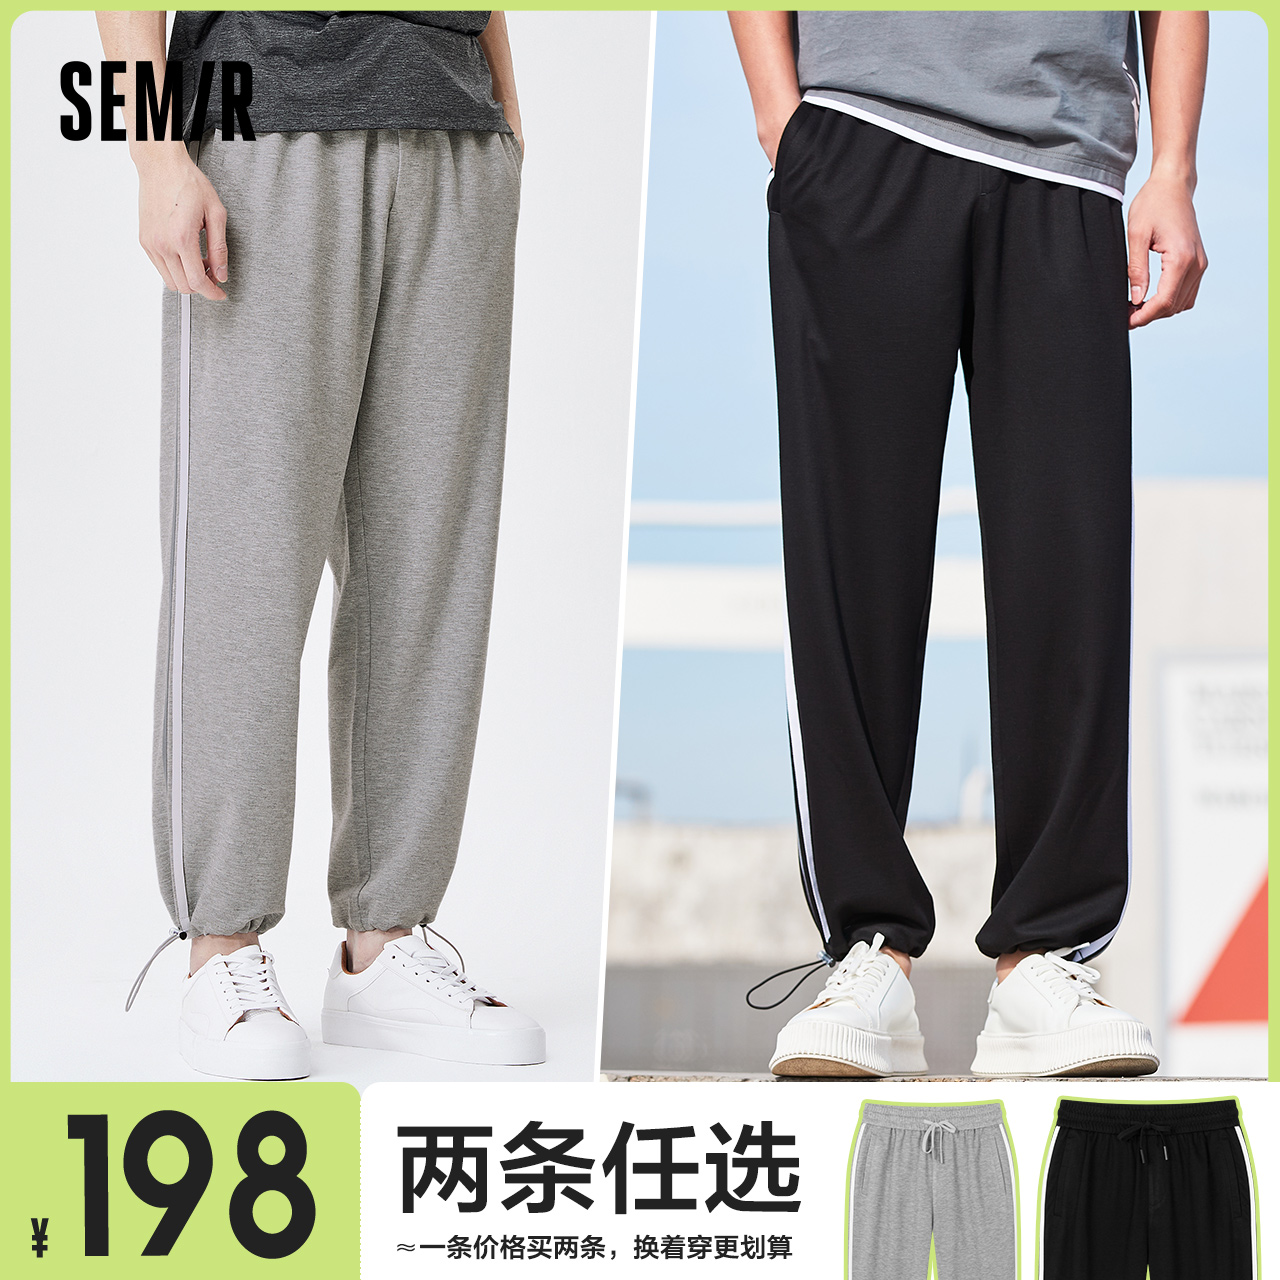 Details page college coupons minus the Sen Ma casual pants men's summer new sports pants high street INS trend bundle footwise pants